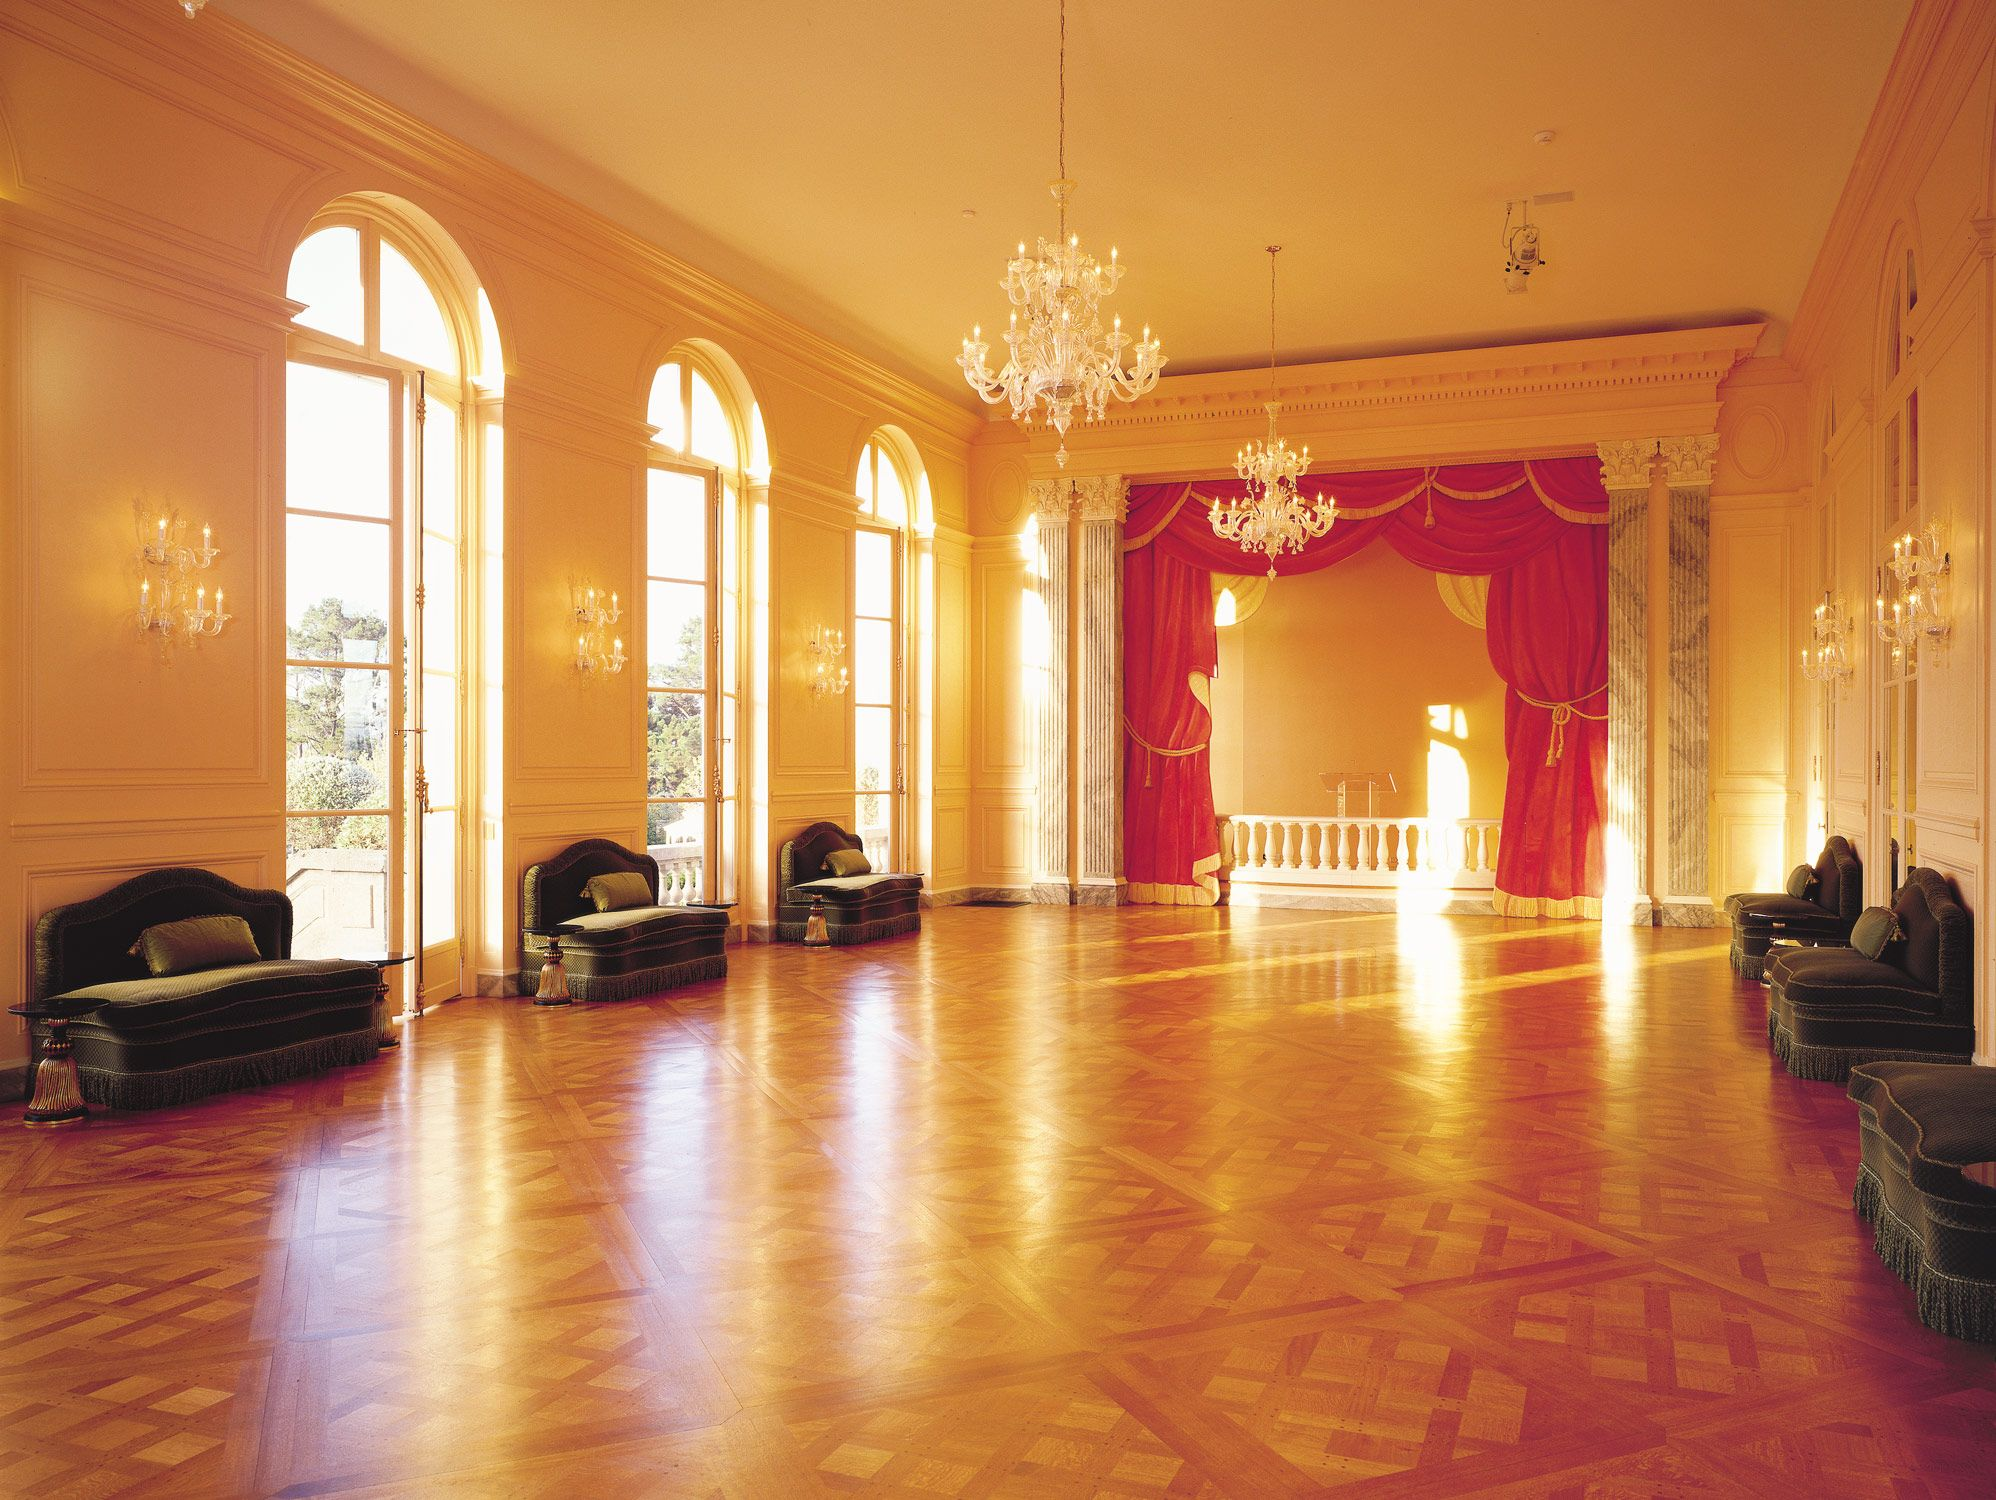 Ballroom carolands palace hillsborough ca castles for Mansion floor plans with ballroom